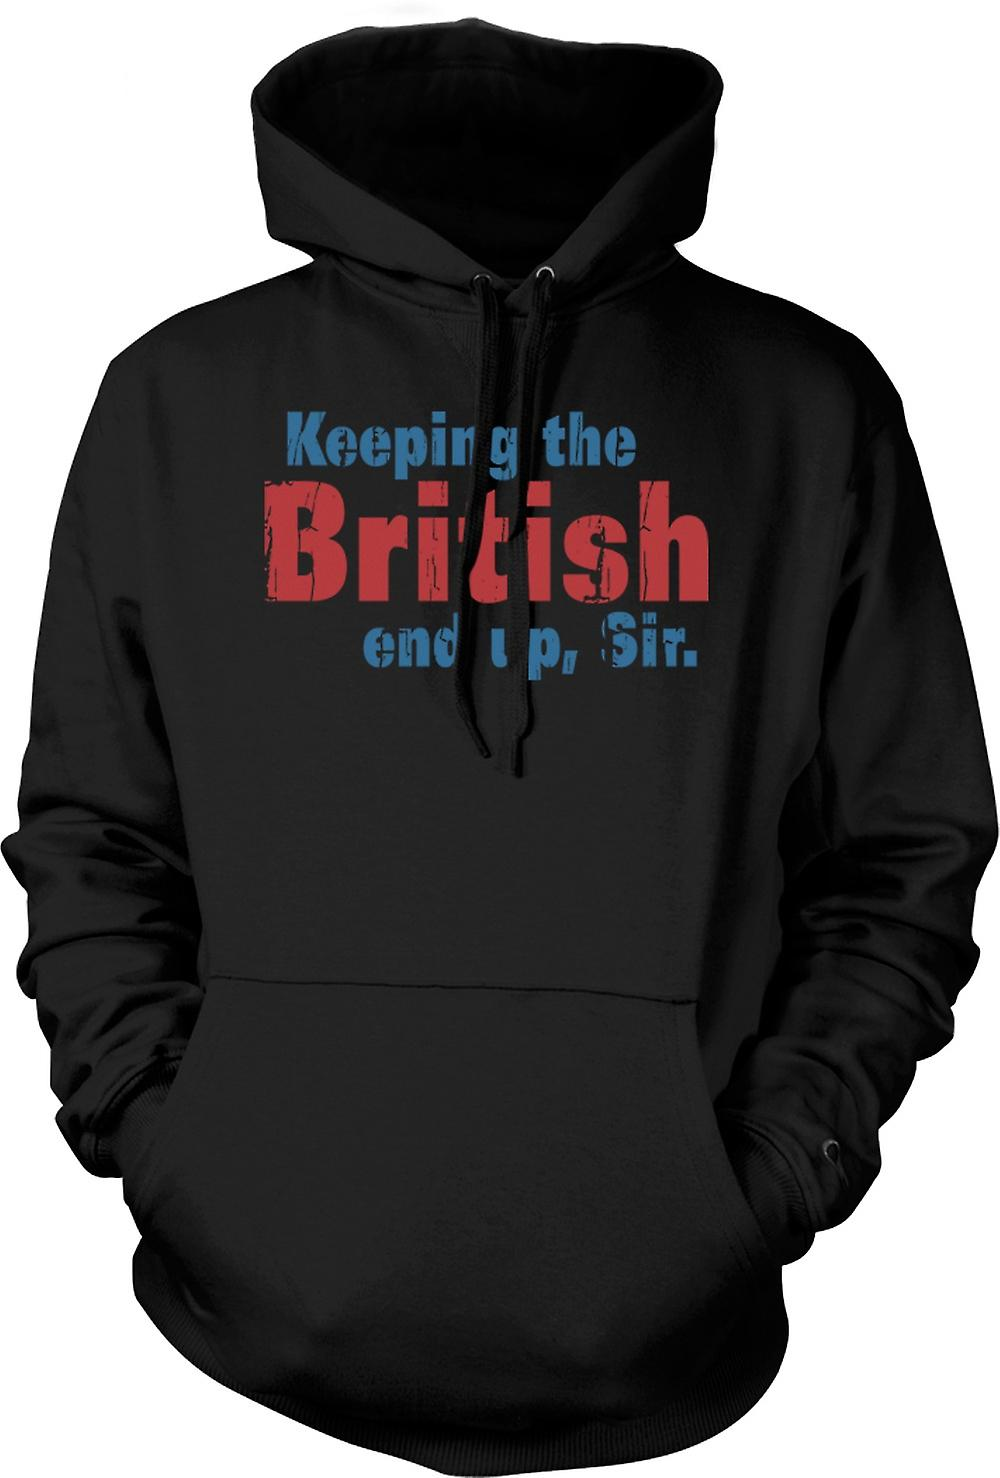 Mens Hoodie - Keeping The British End Up, Sir - Funny Quote